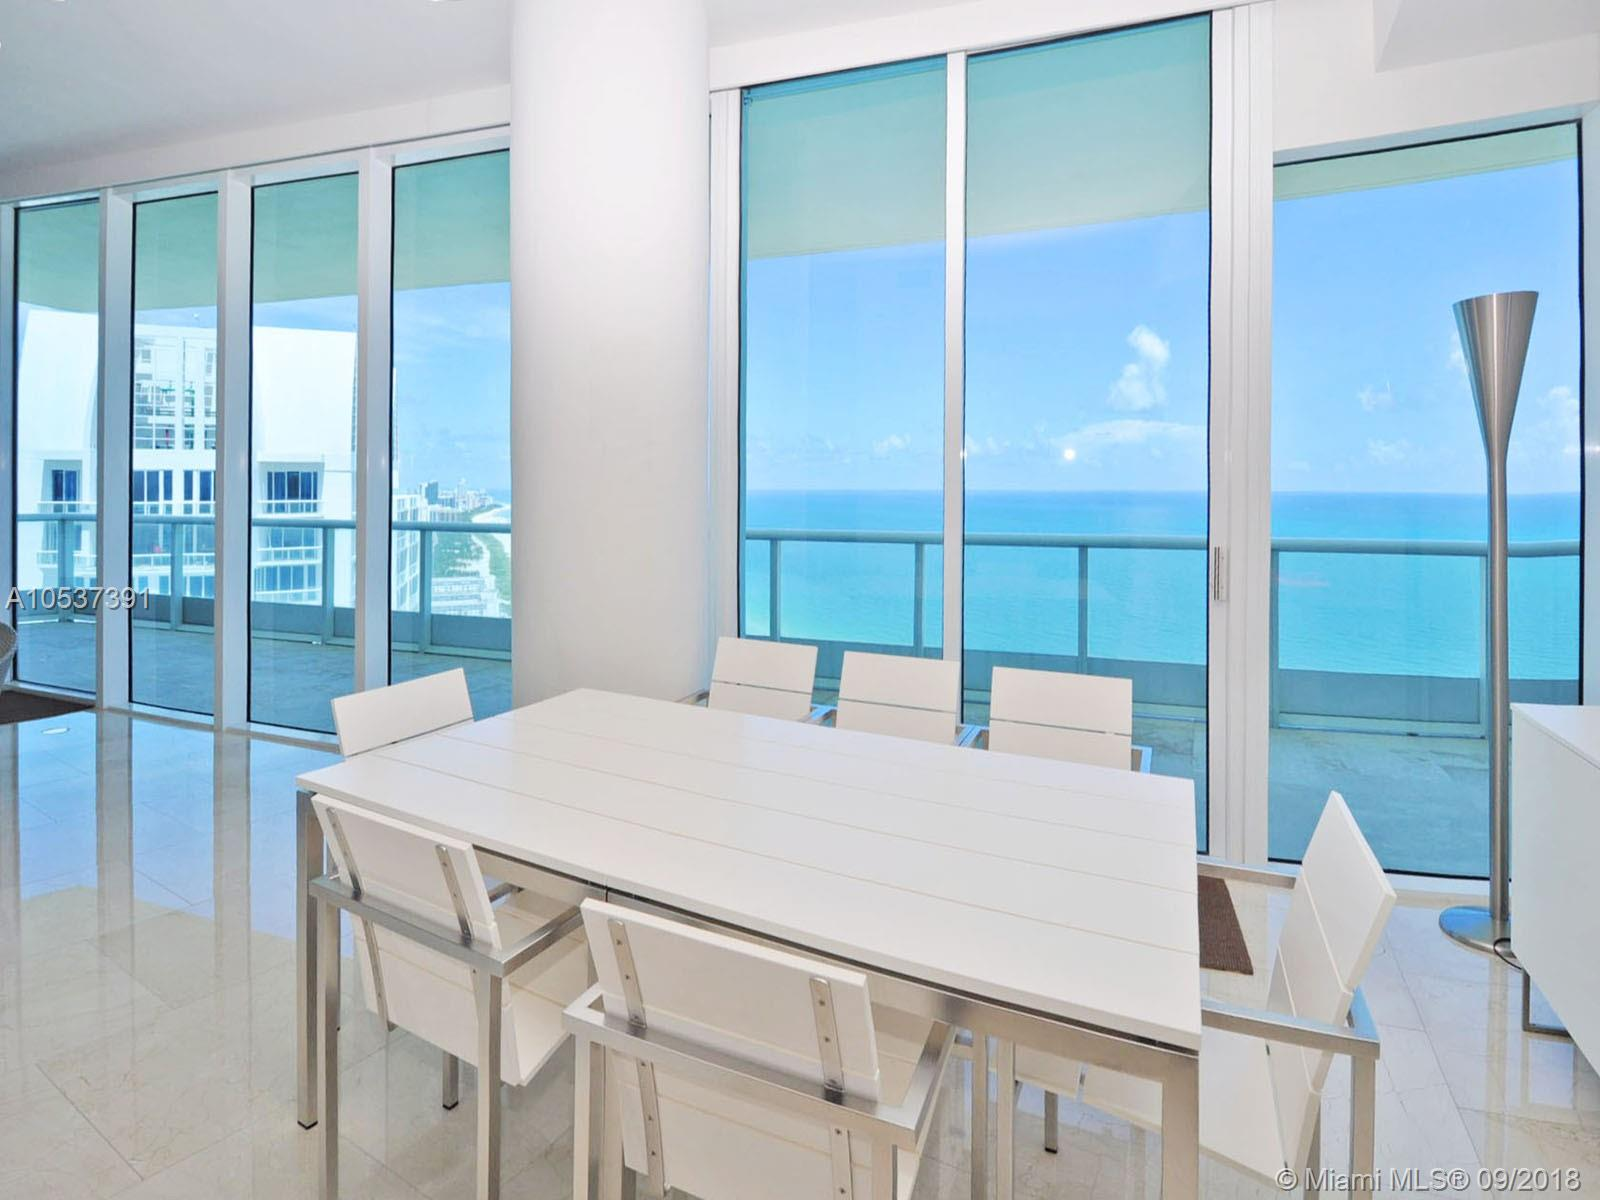 100 Pointe dr-3606 miami-beach-fl-33139-a10537391-Pic03